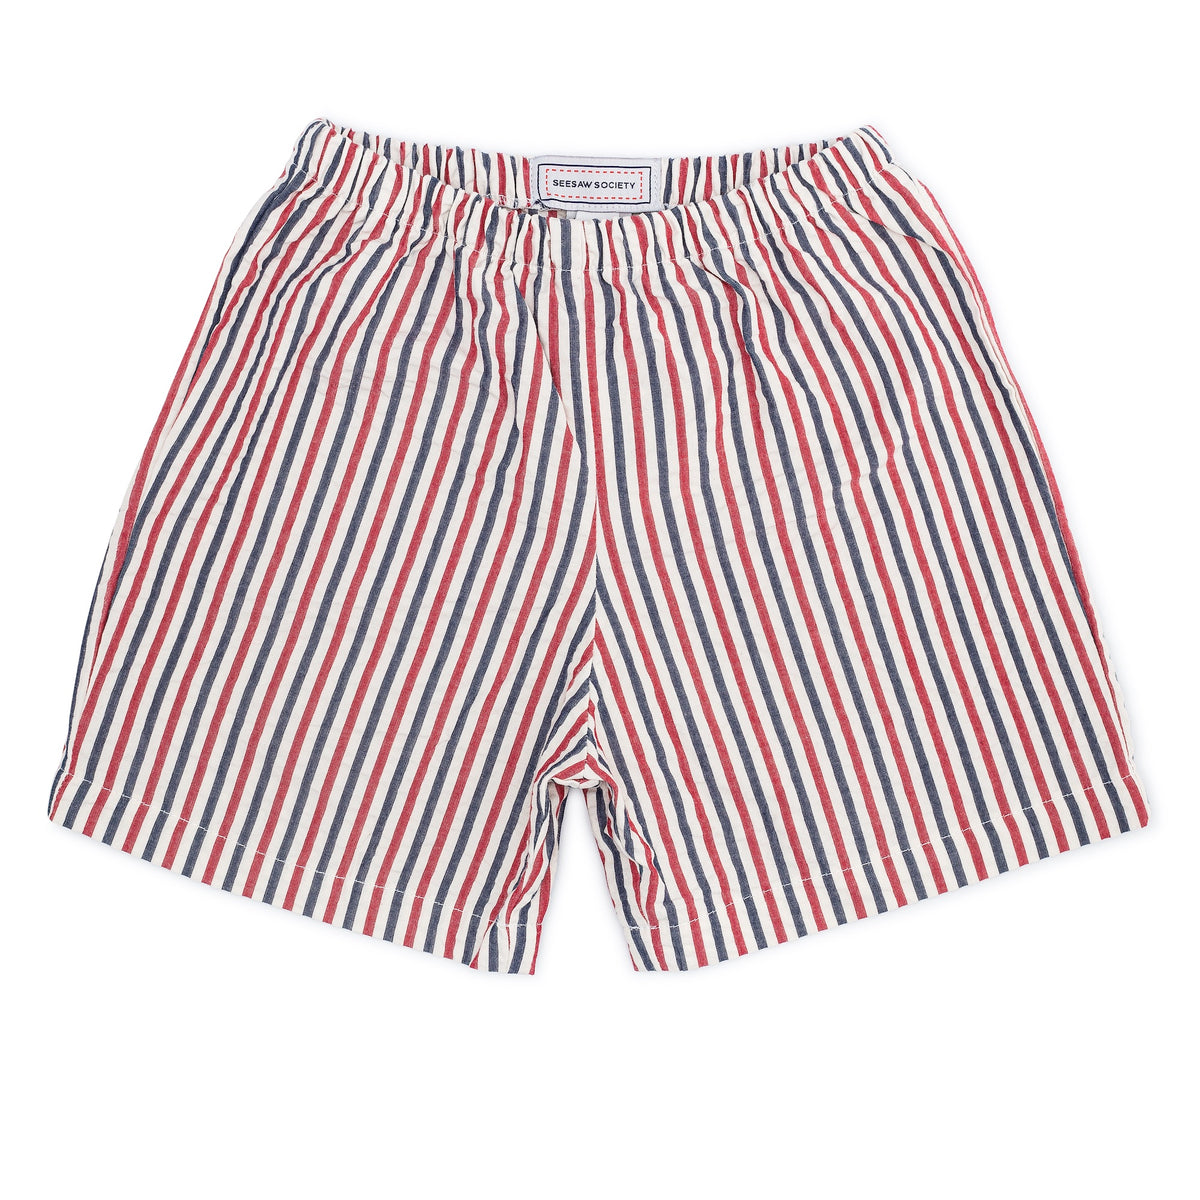 Boys Shorts- Regatta